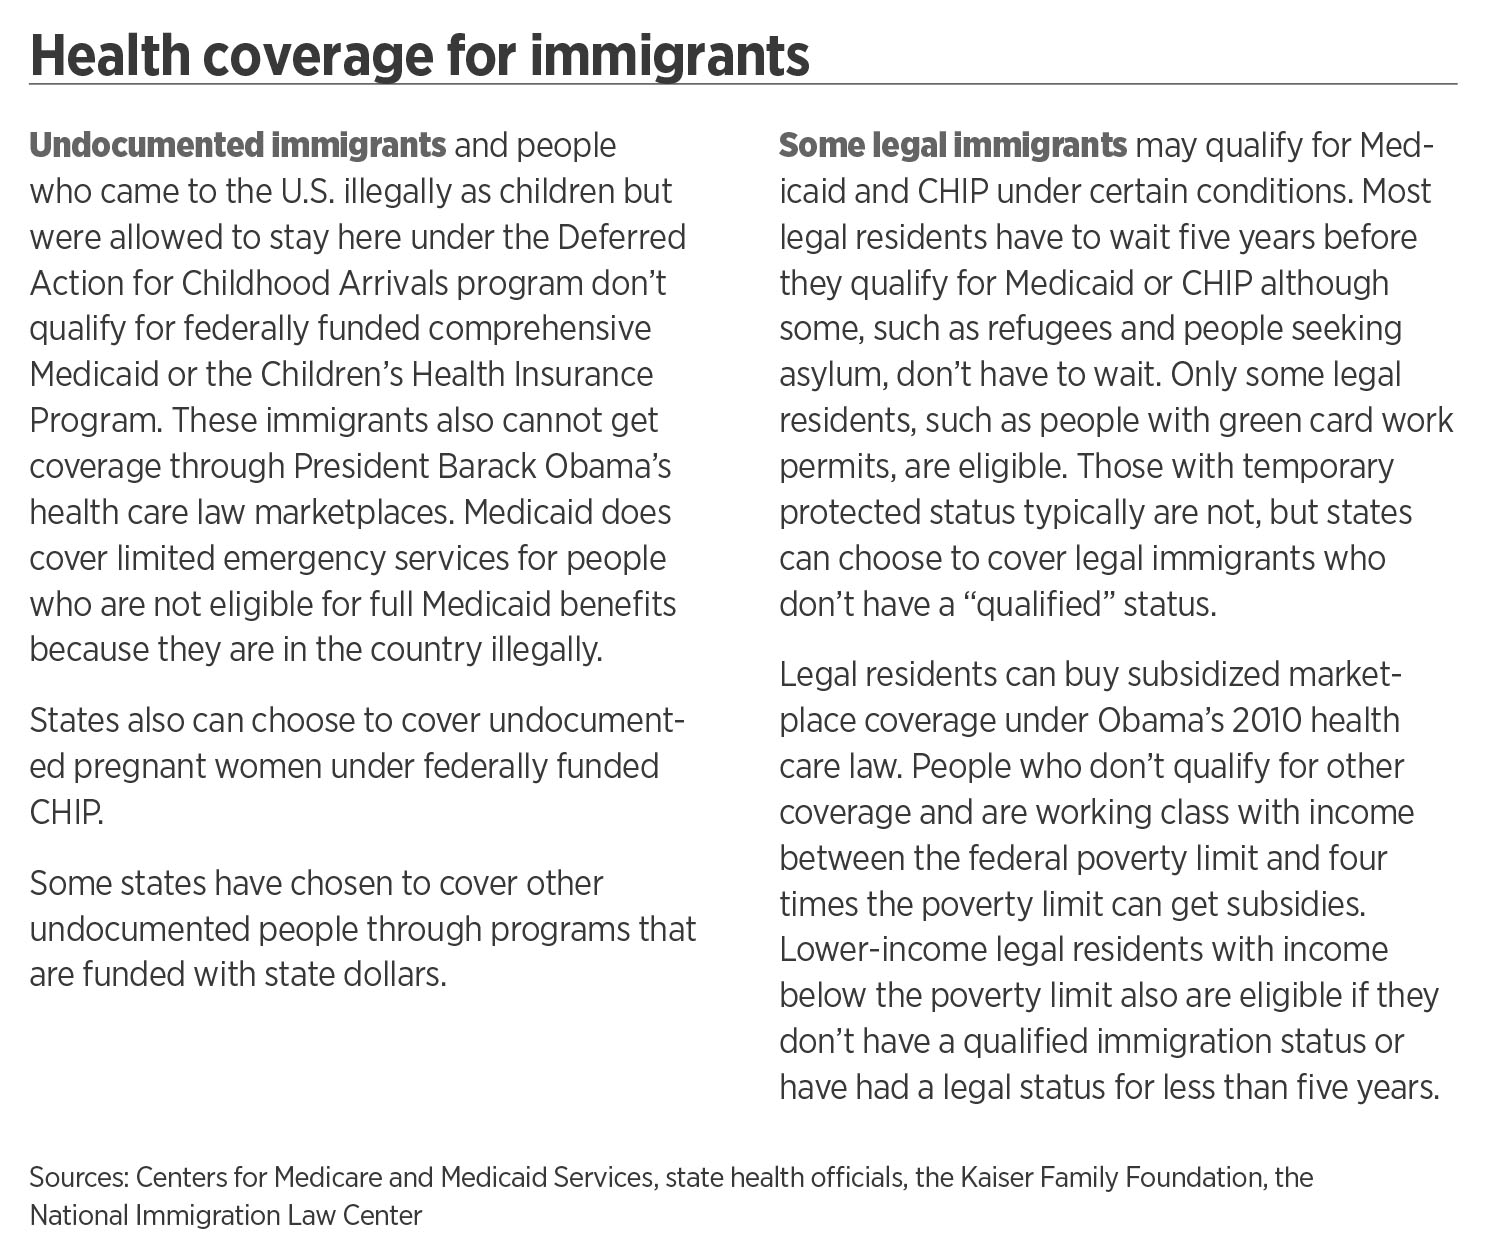 03immigranthealth-coverage